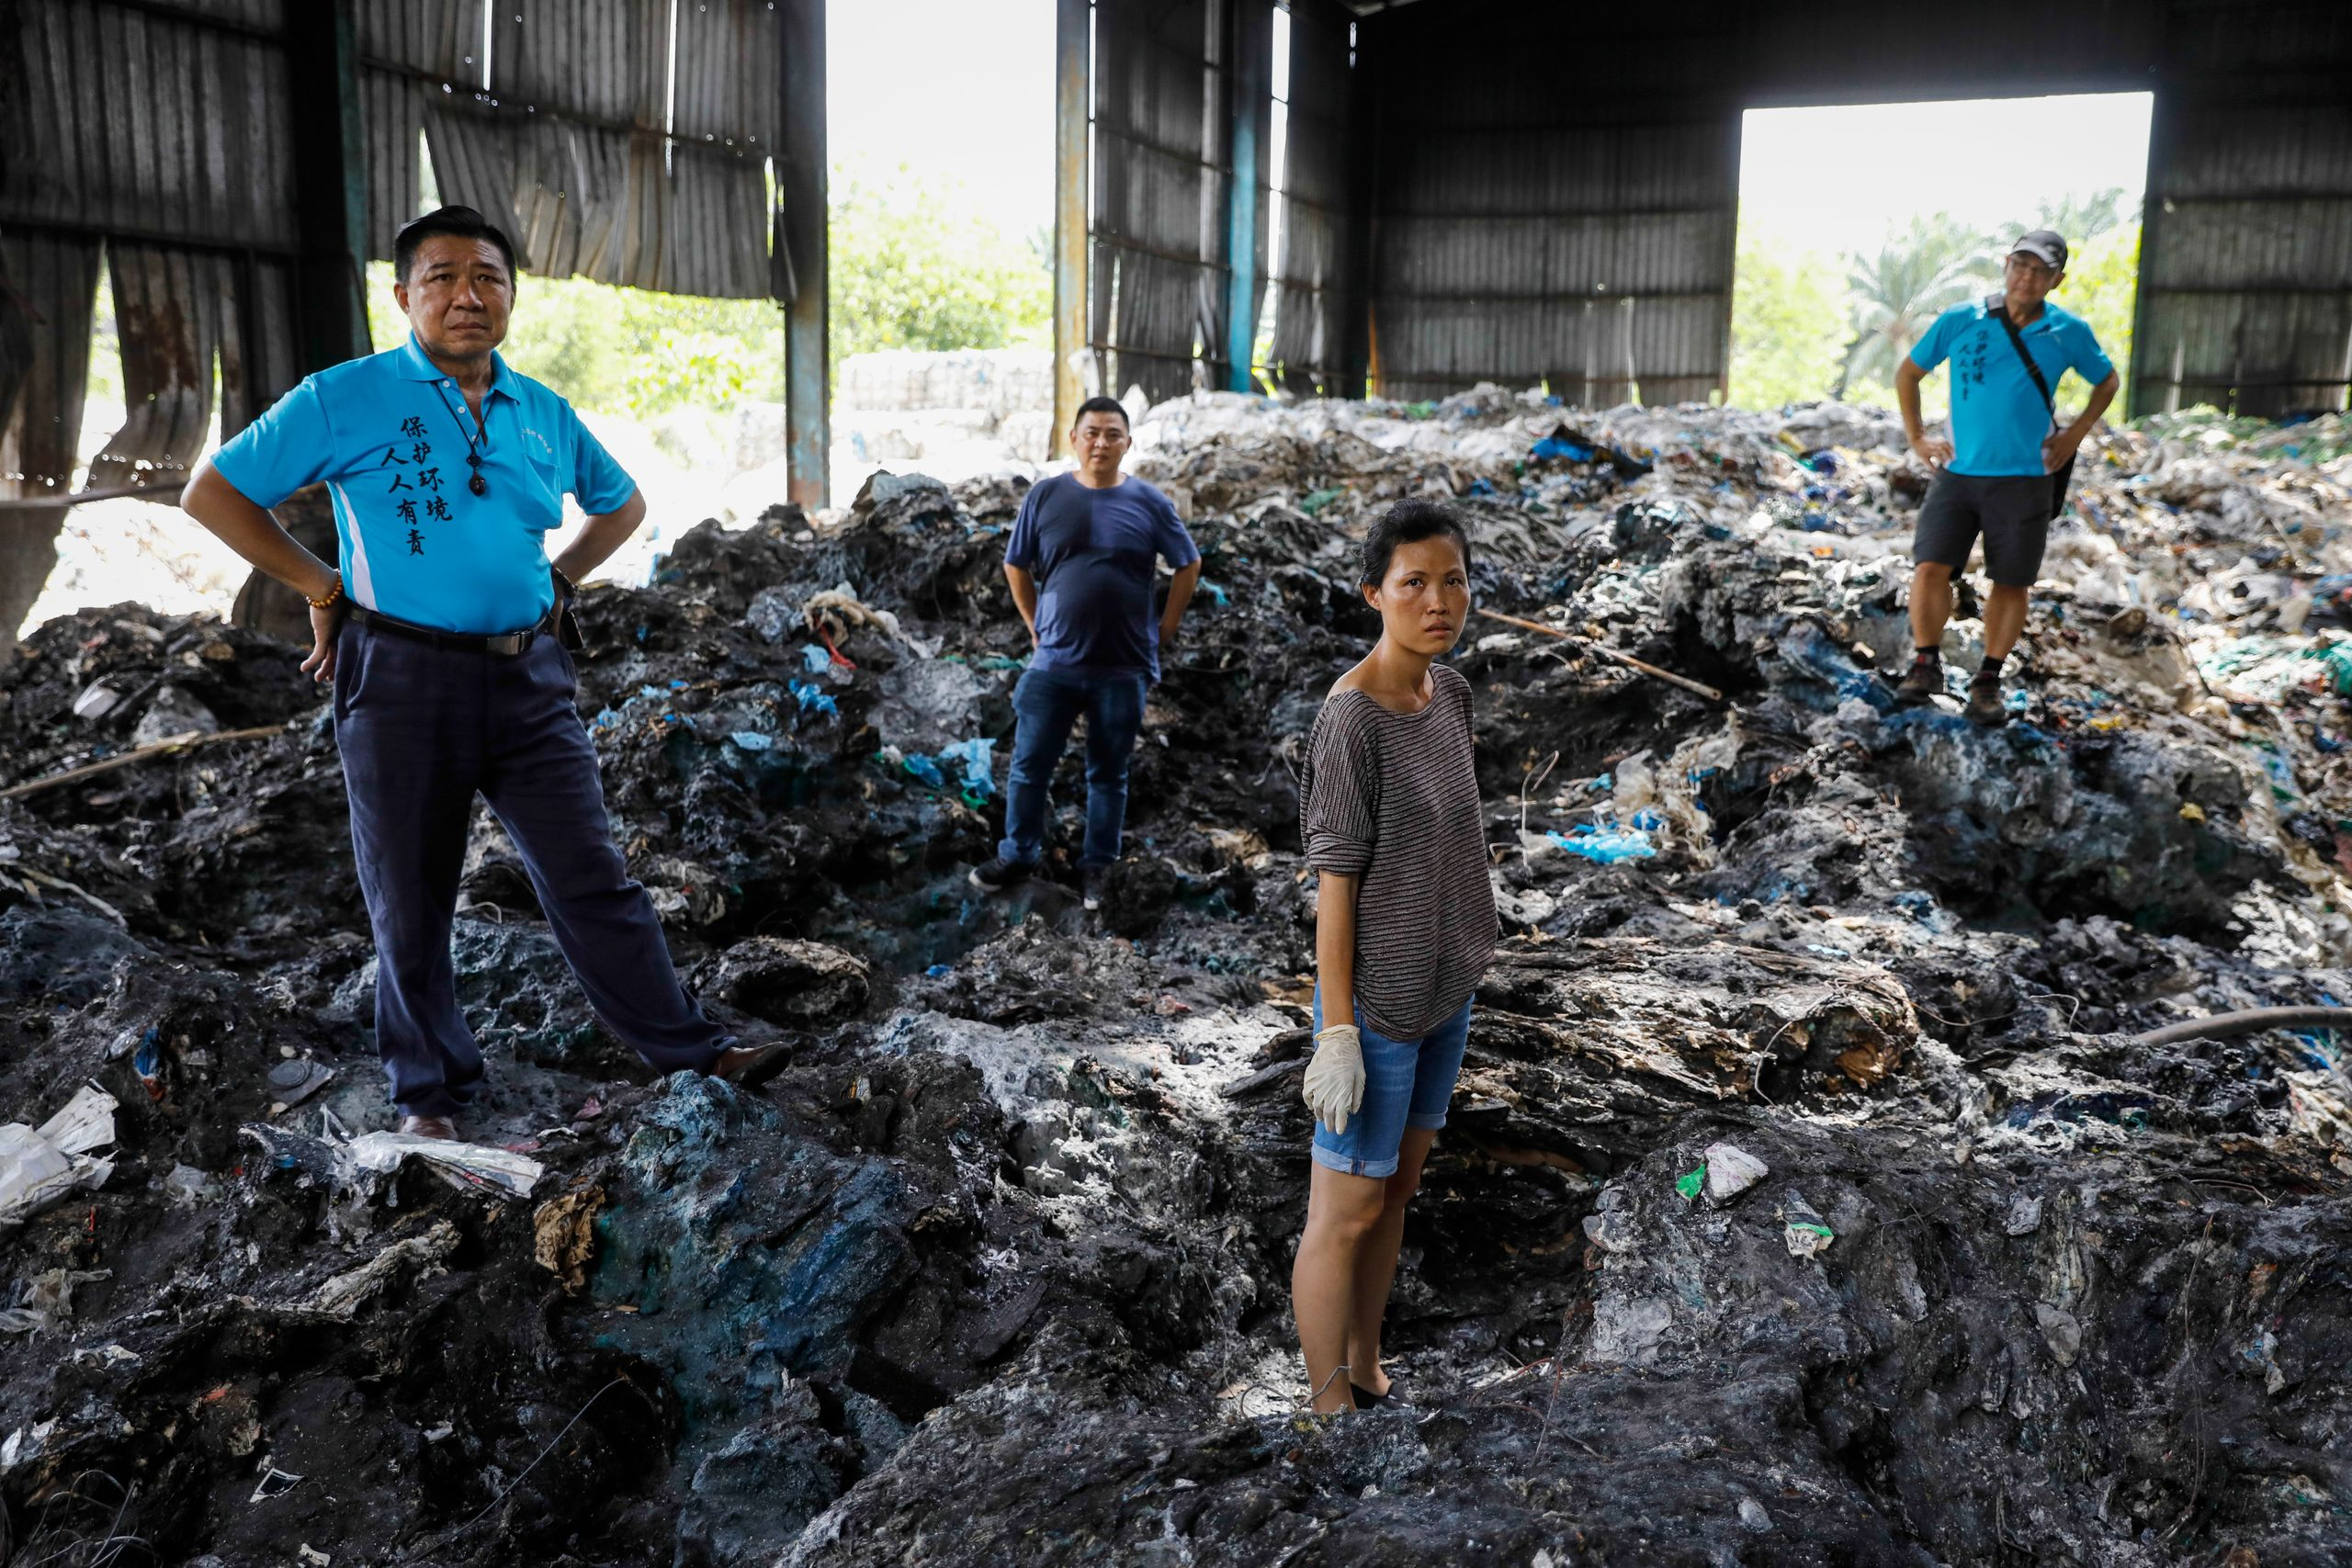 Pua poses with volunteers at an illegal plastic recycling factory in Kuala Langat on Feb. 2, 2019.